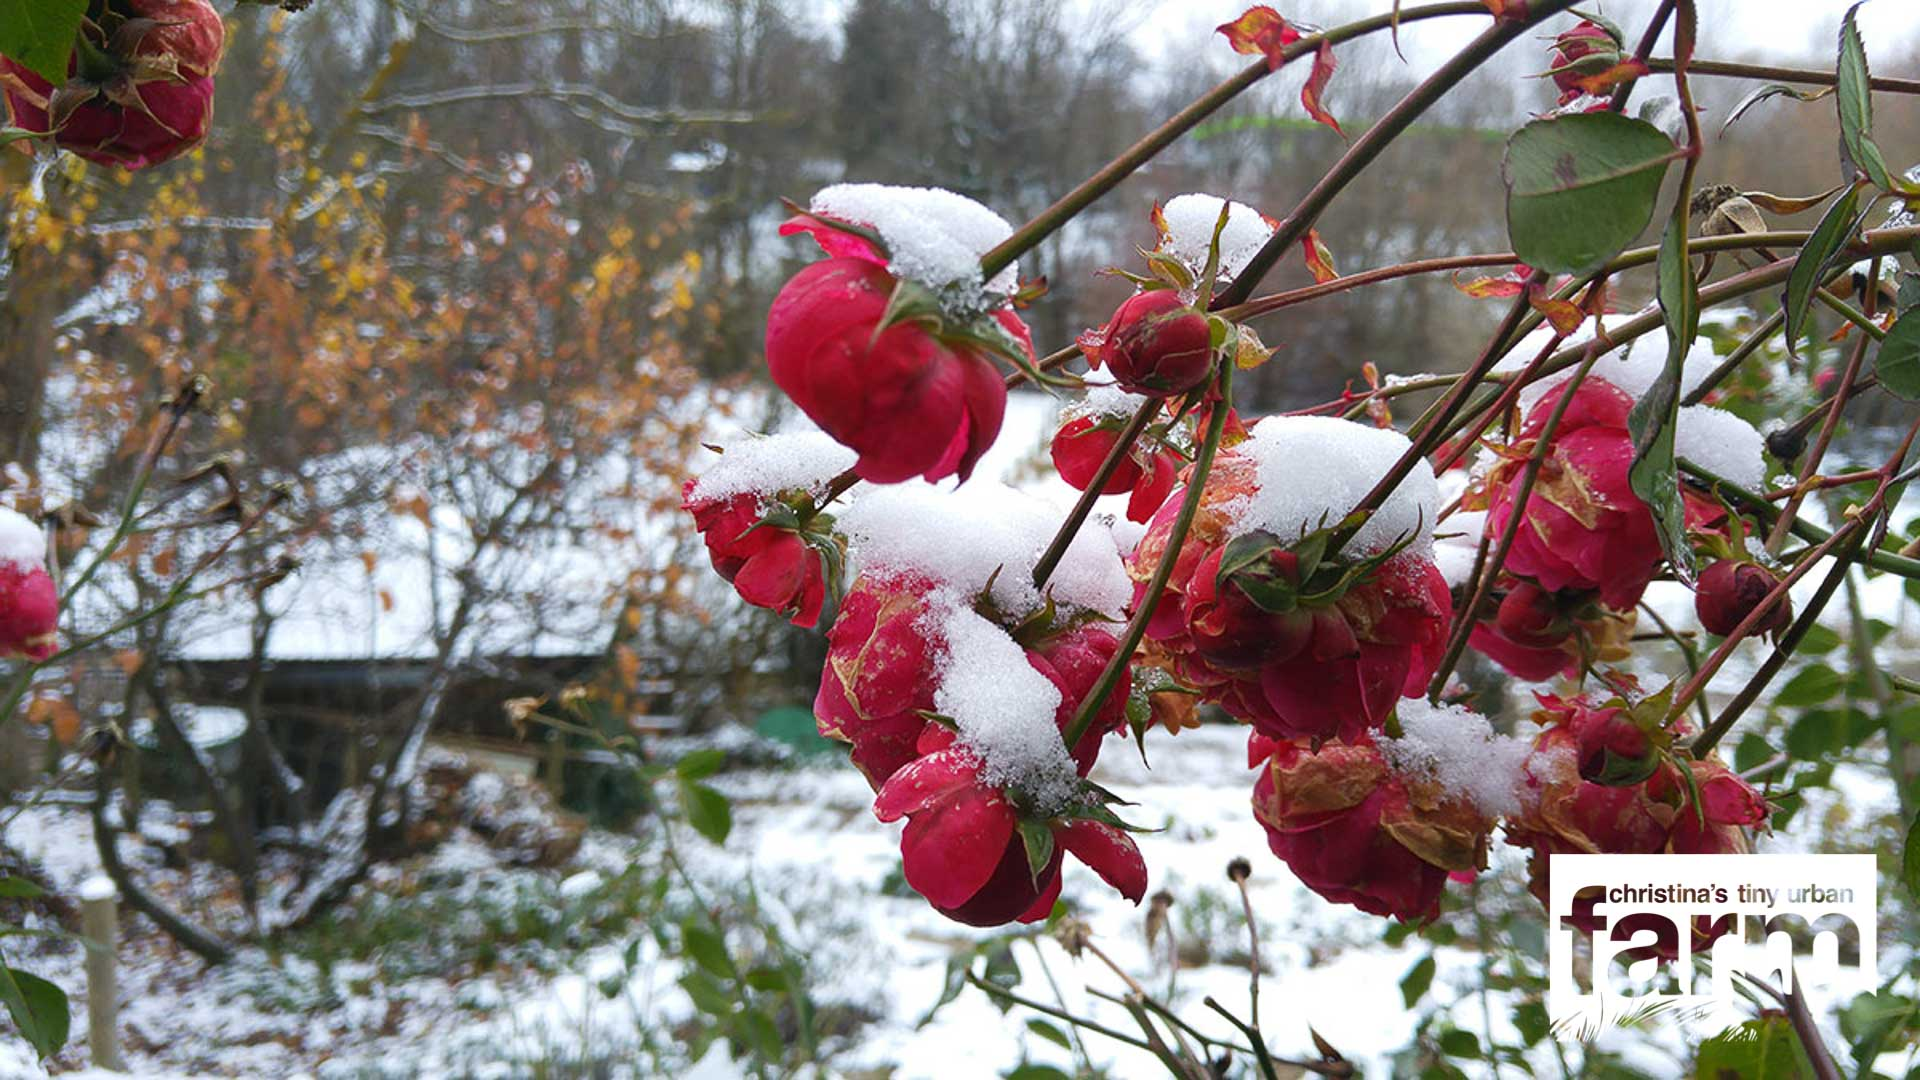 Pomponella roses covered with snow.